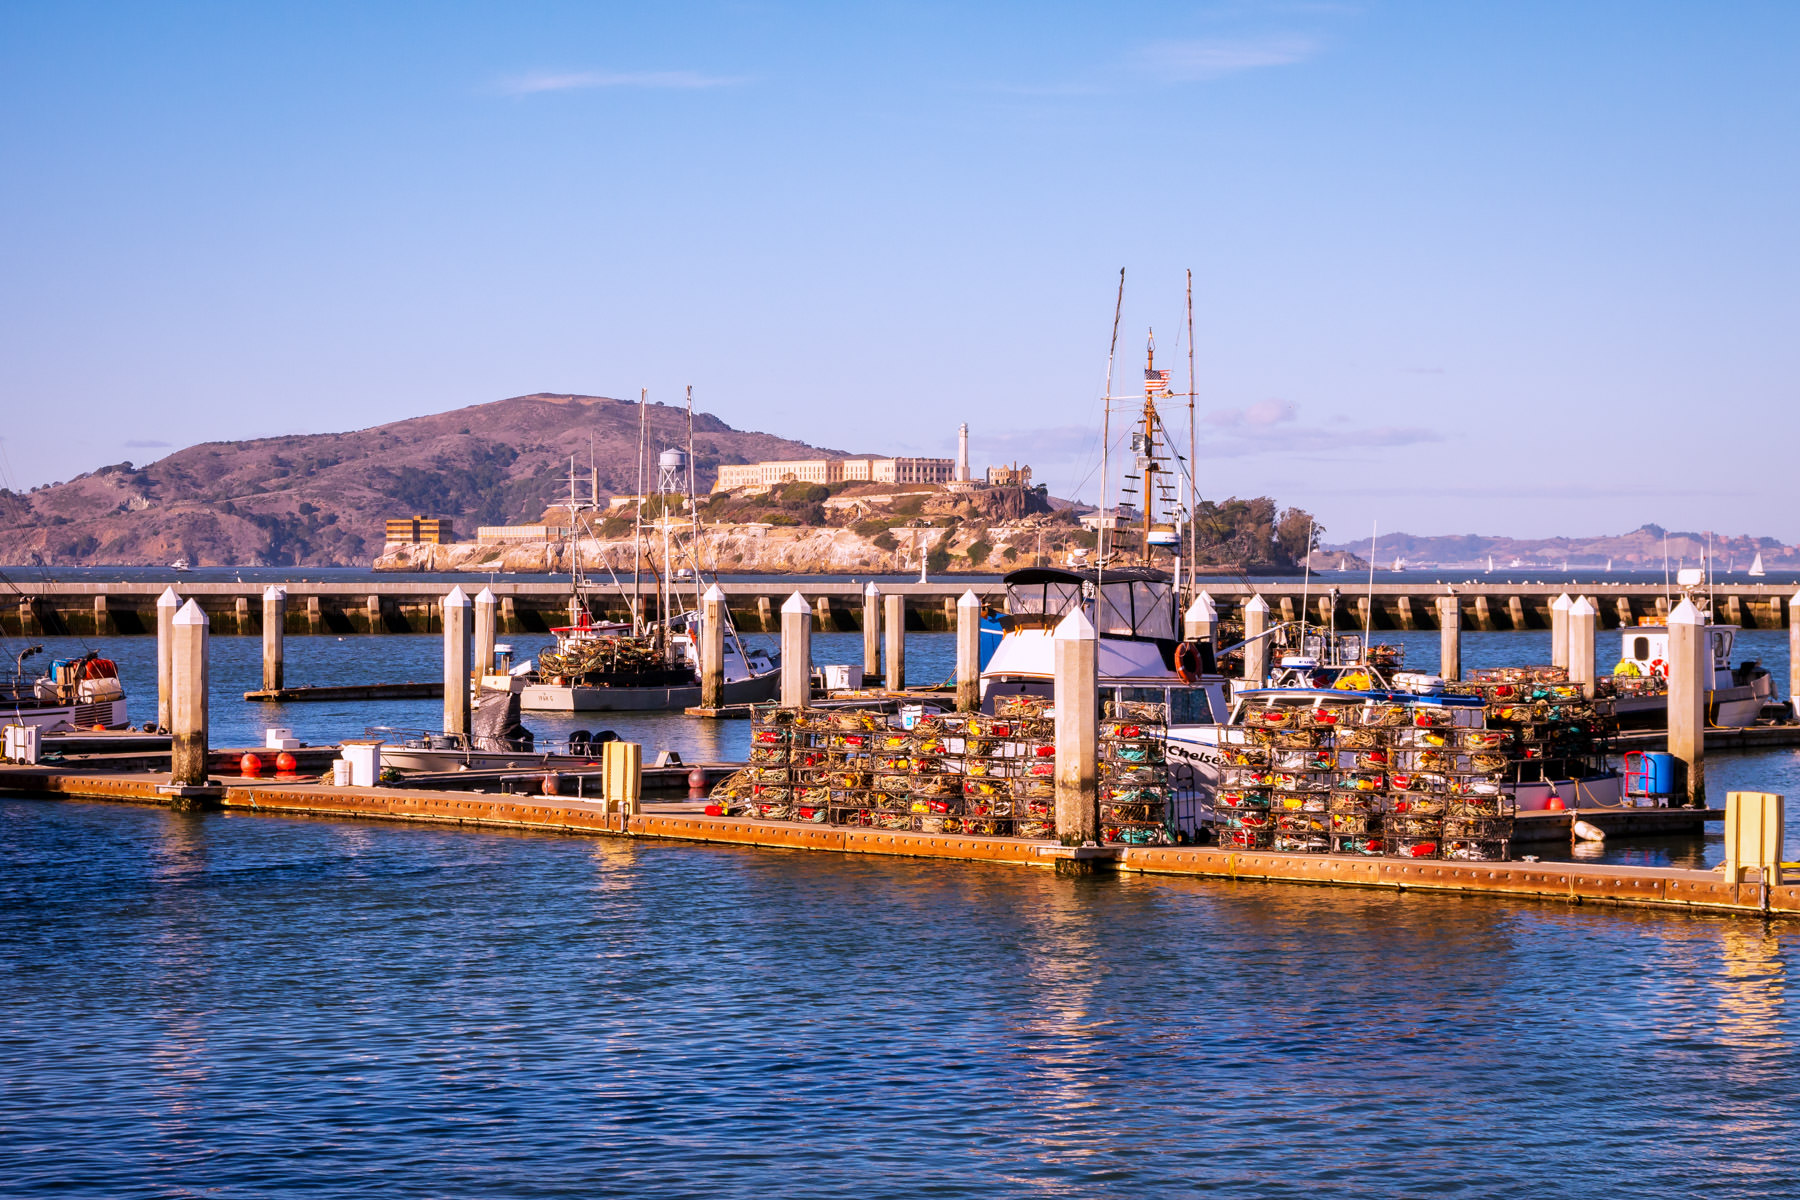 Dungeness crab fishing boats docked at a pier loaded with crab pots at Fisherman's Wharf in the shadow of San Francisco Bay's Alcatraz.